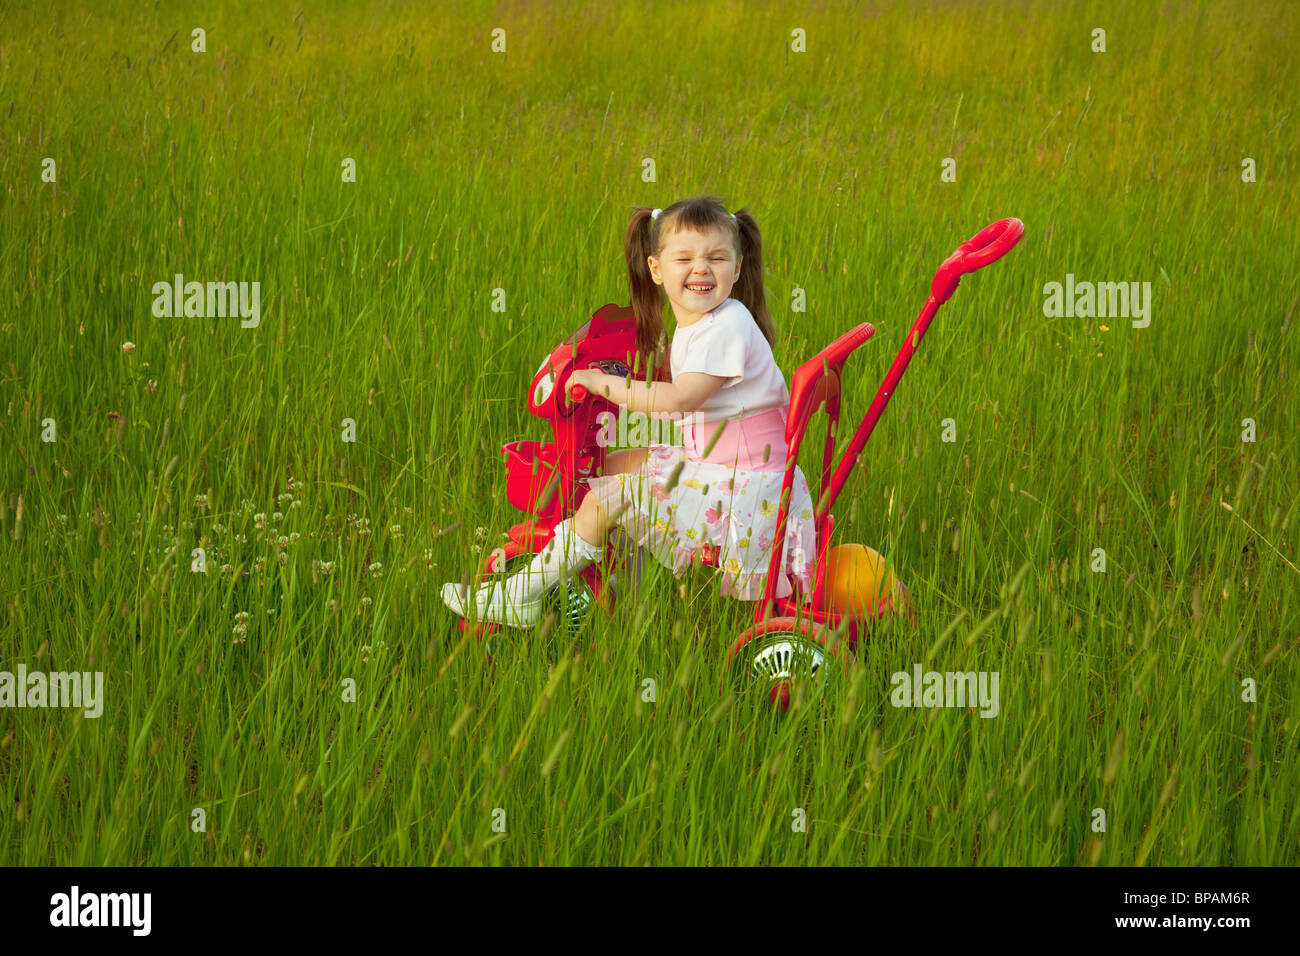 The comical child goes across the field on a bicycle and grimace Stock Photo